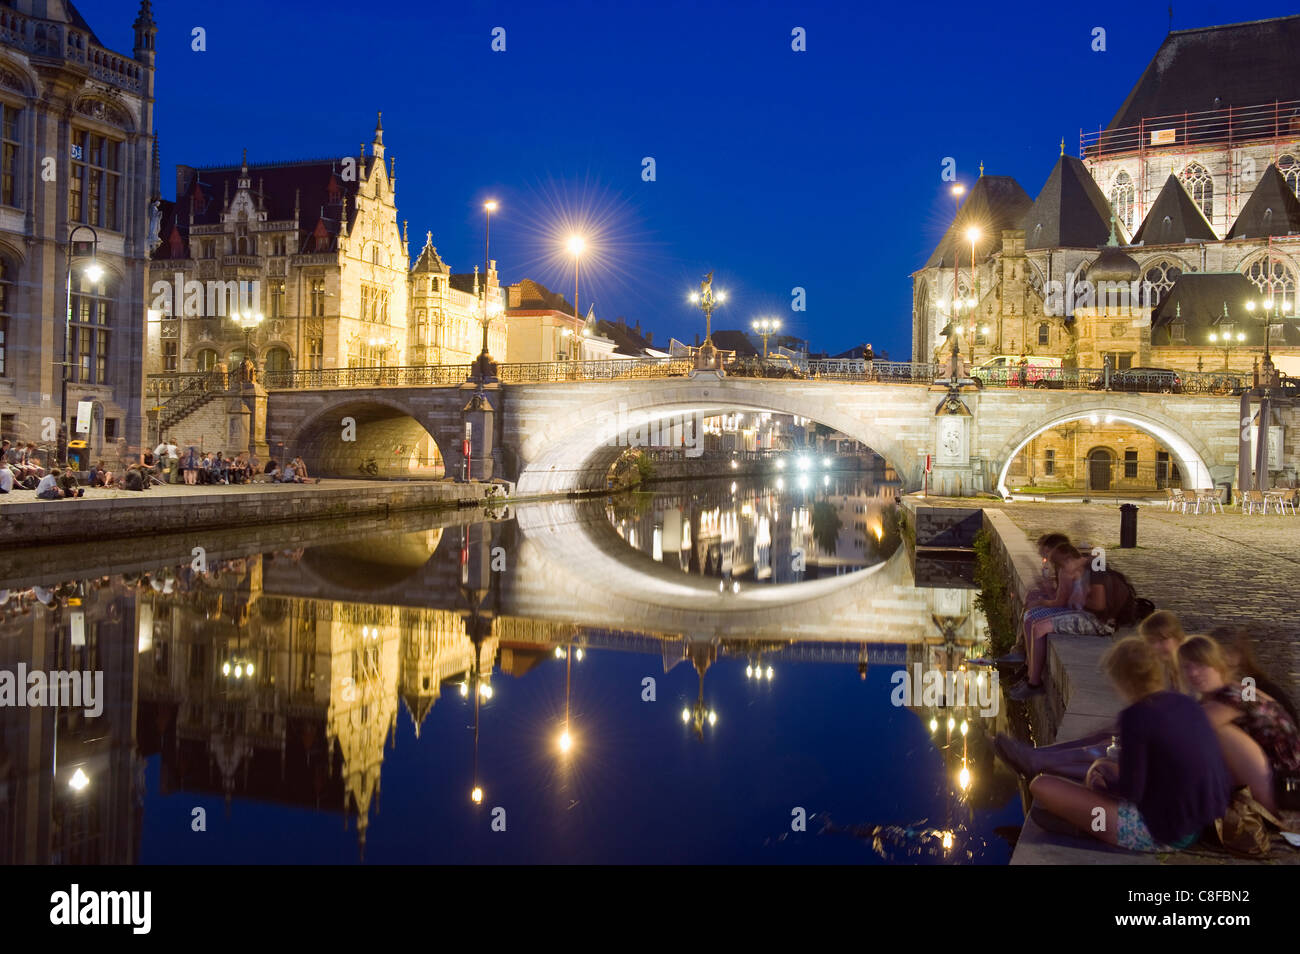 Reflection of arched bridge and waterfront town houses, Ghent, Flanders, Belgium - Stock Image